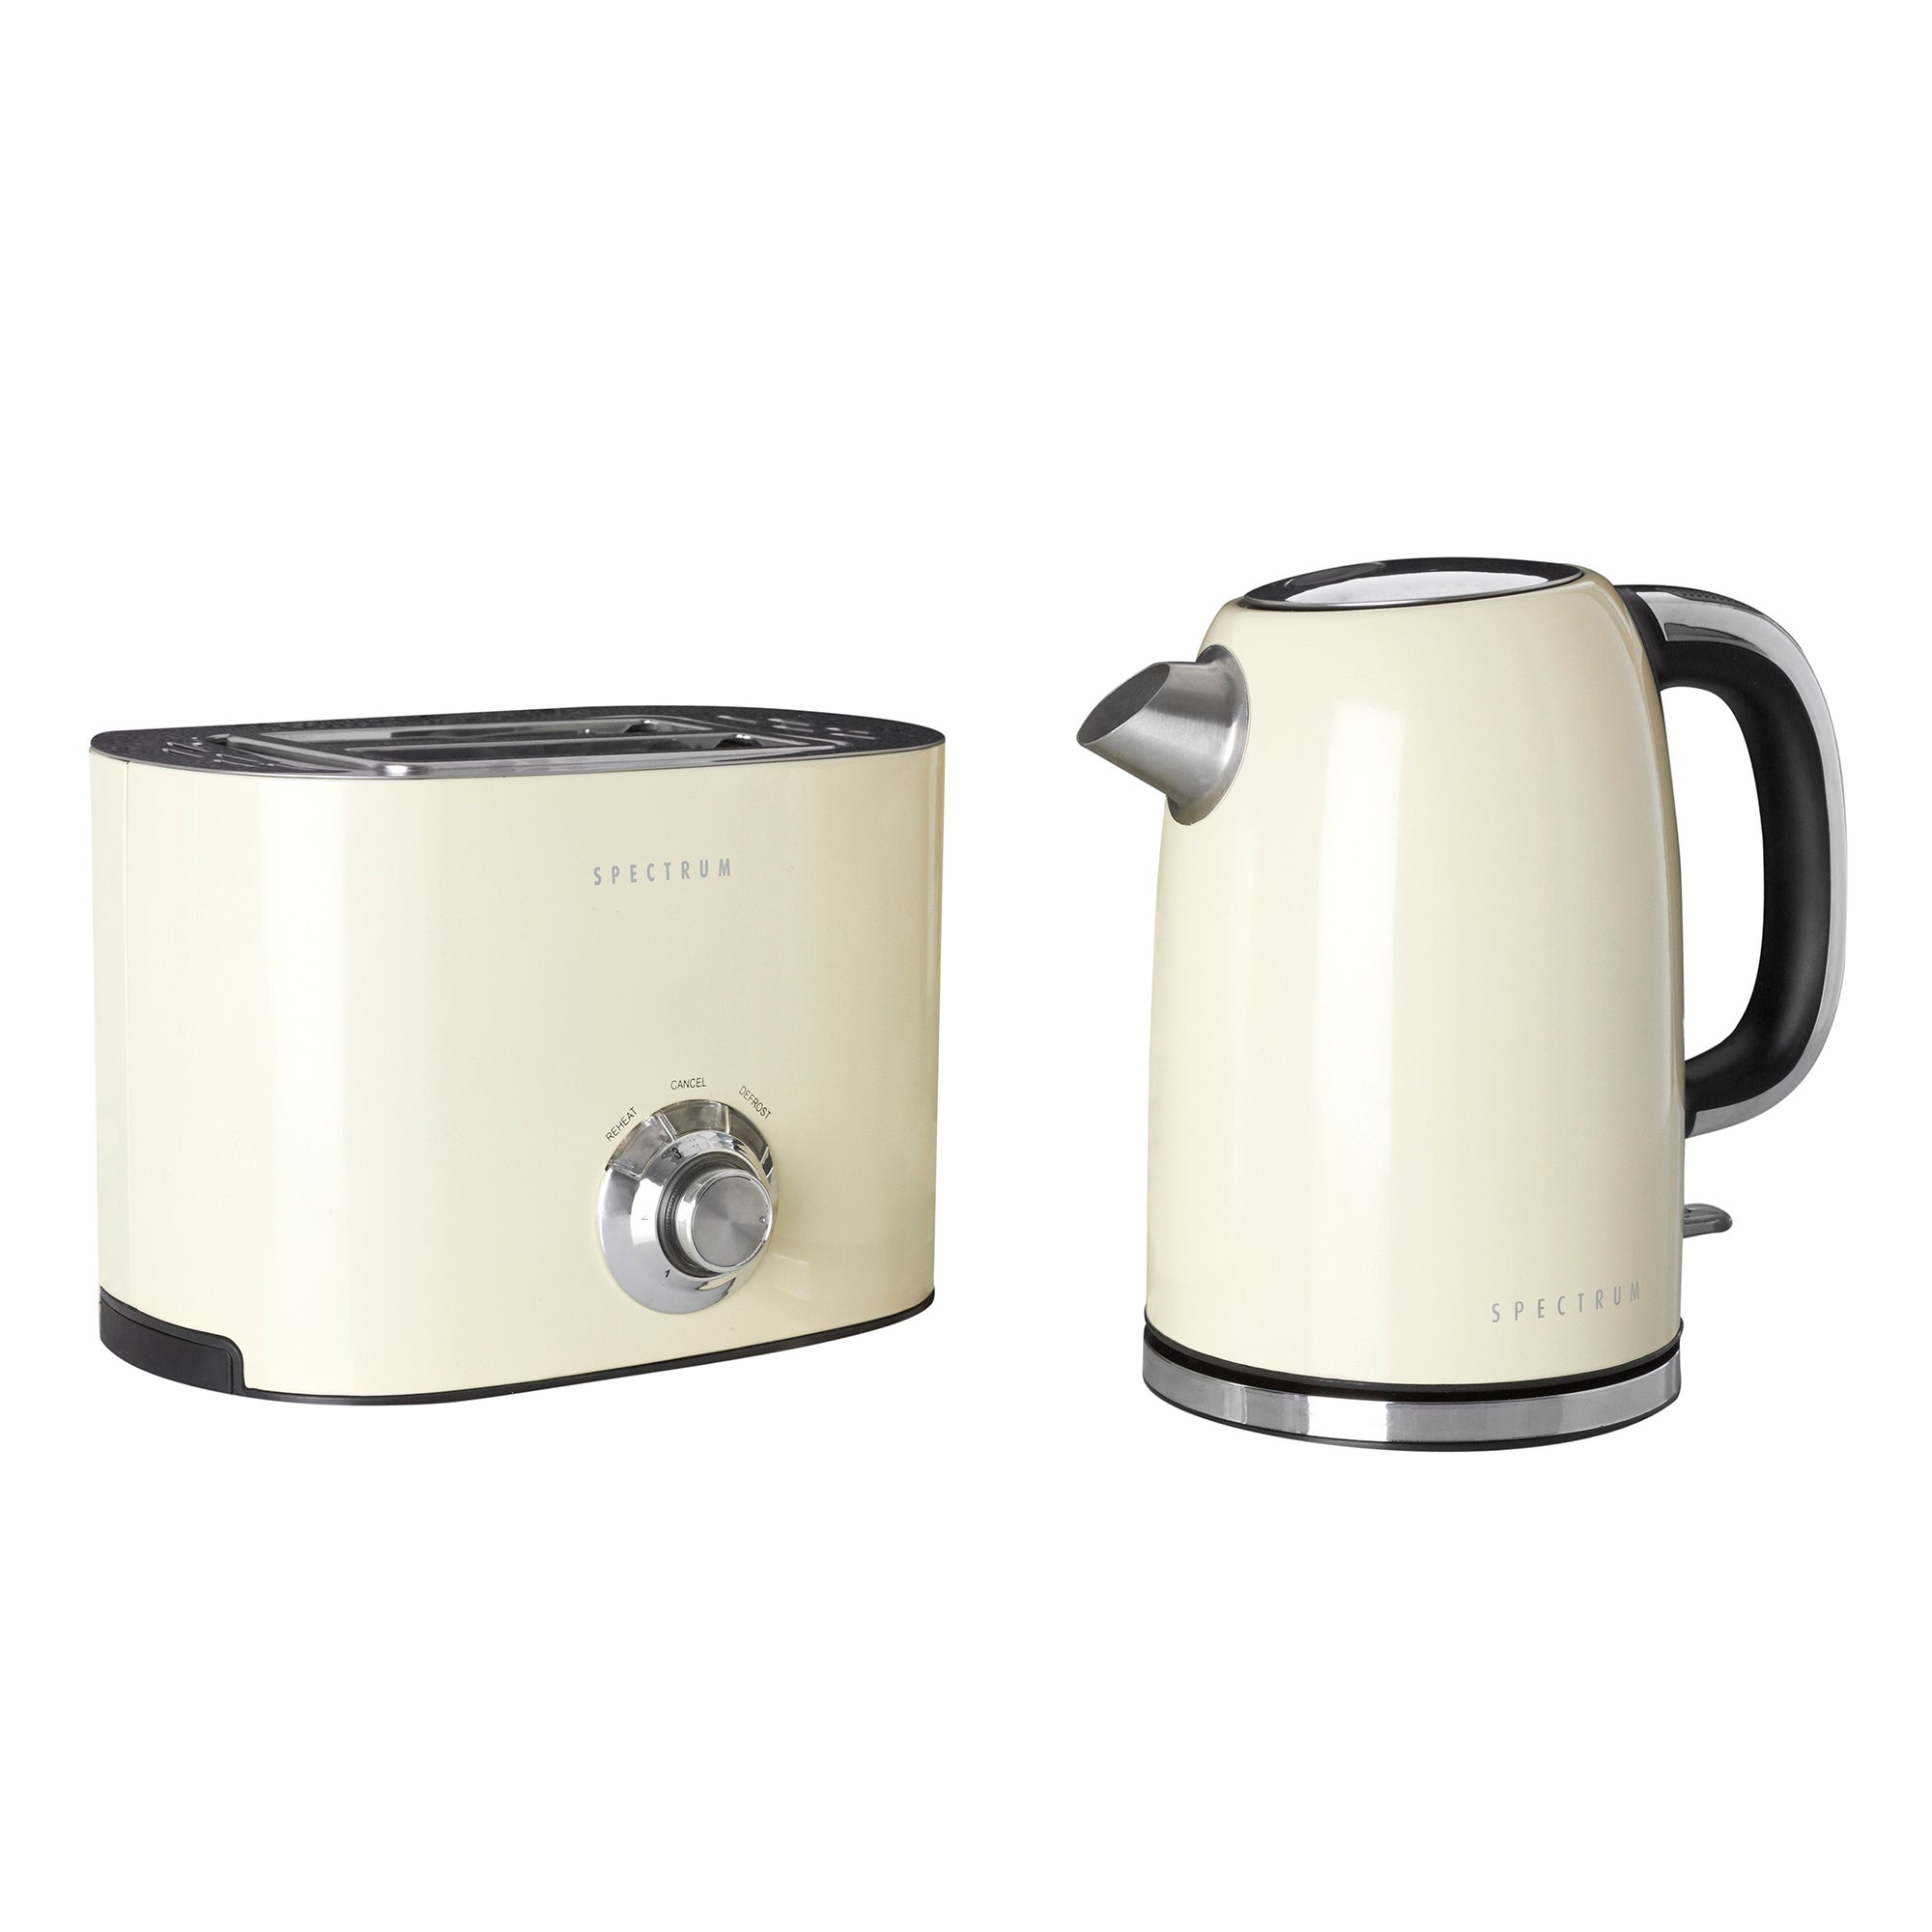 Spectrum Cream Kettle and Toaster Set Cream